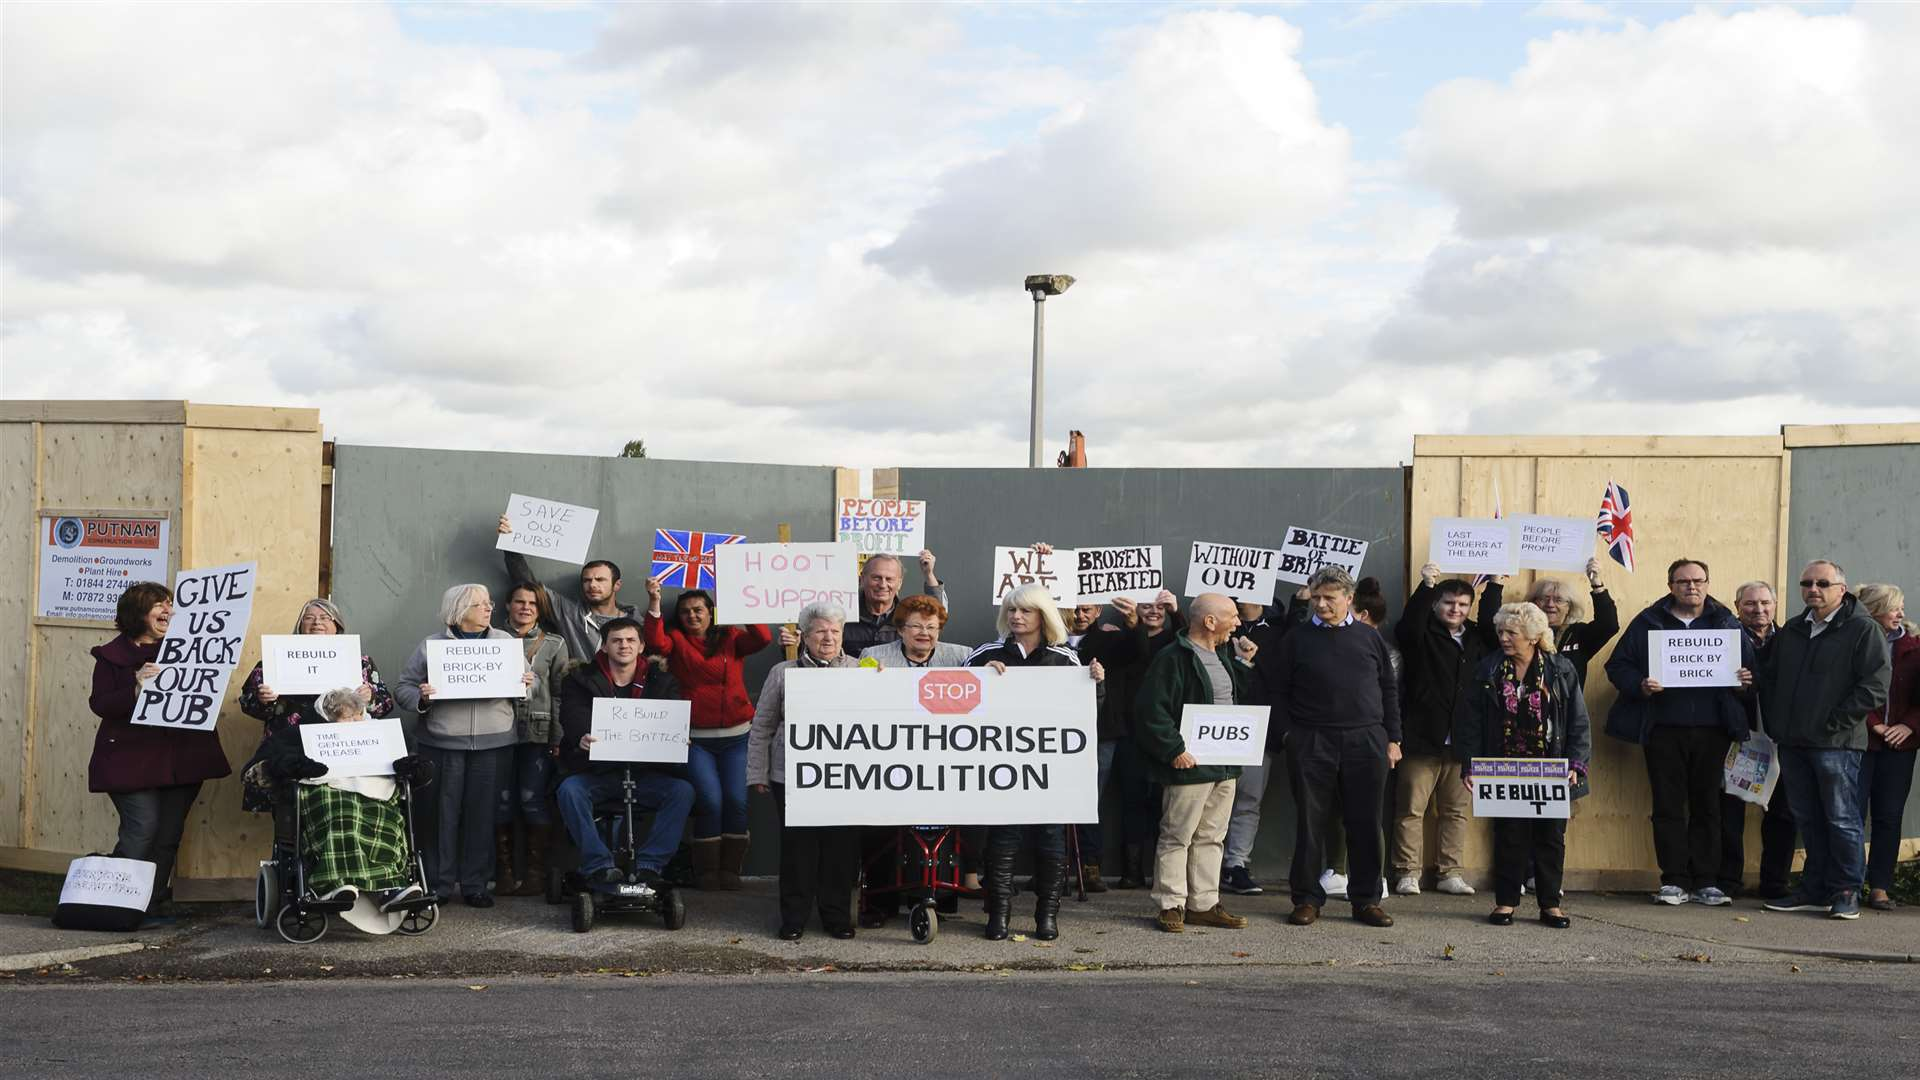 Demonstrators outside the site of the former Battle of Britain pub, Coldharbour Road, Northfleet.